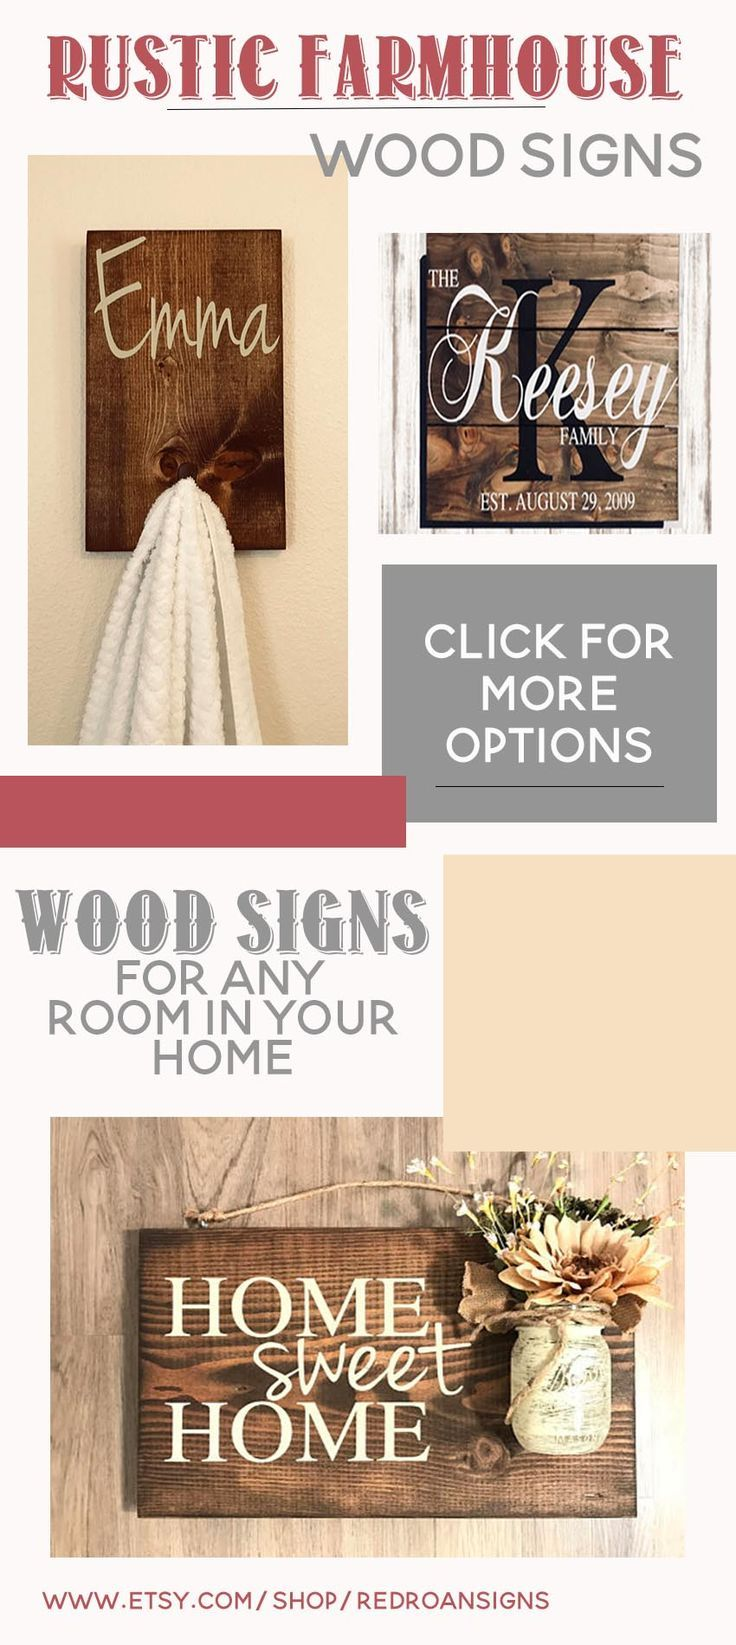 Rustic Farmhouse wood signs for the entire family! These make great wedding gifts, birthday gifts, and so many other special occasions. With a rustic charm these handmade signs are unique and add the perfect touch to any farmhouse. #home #decor #homedecor #farmhouse #rustic #woodwork #handmade #woodsigns